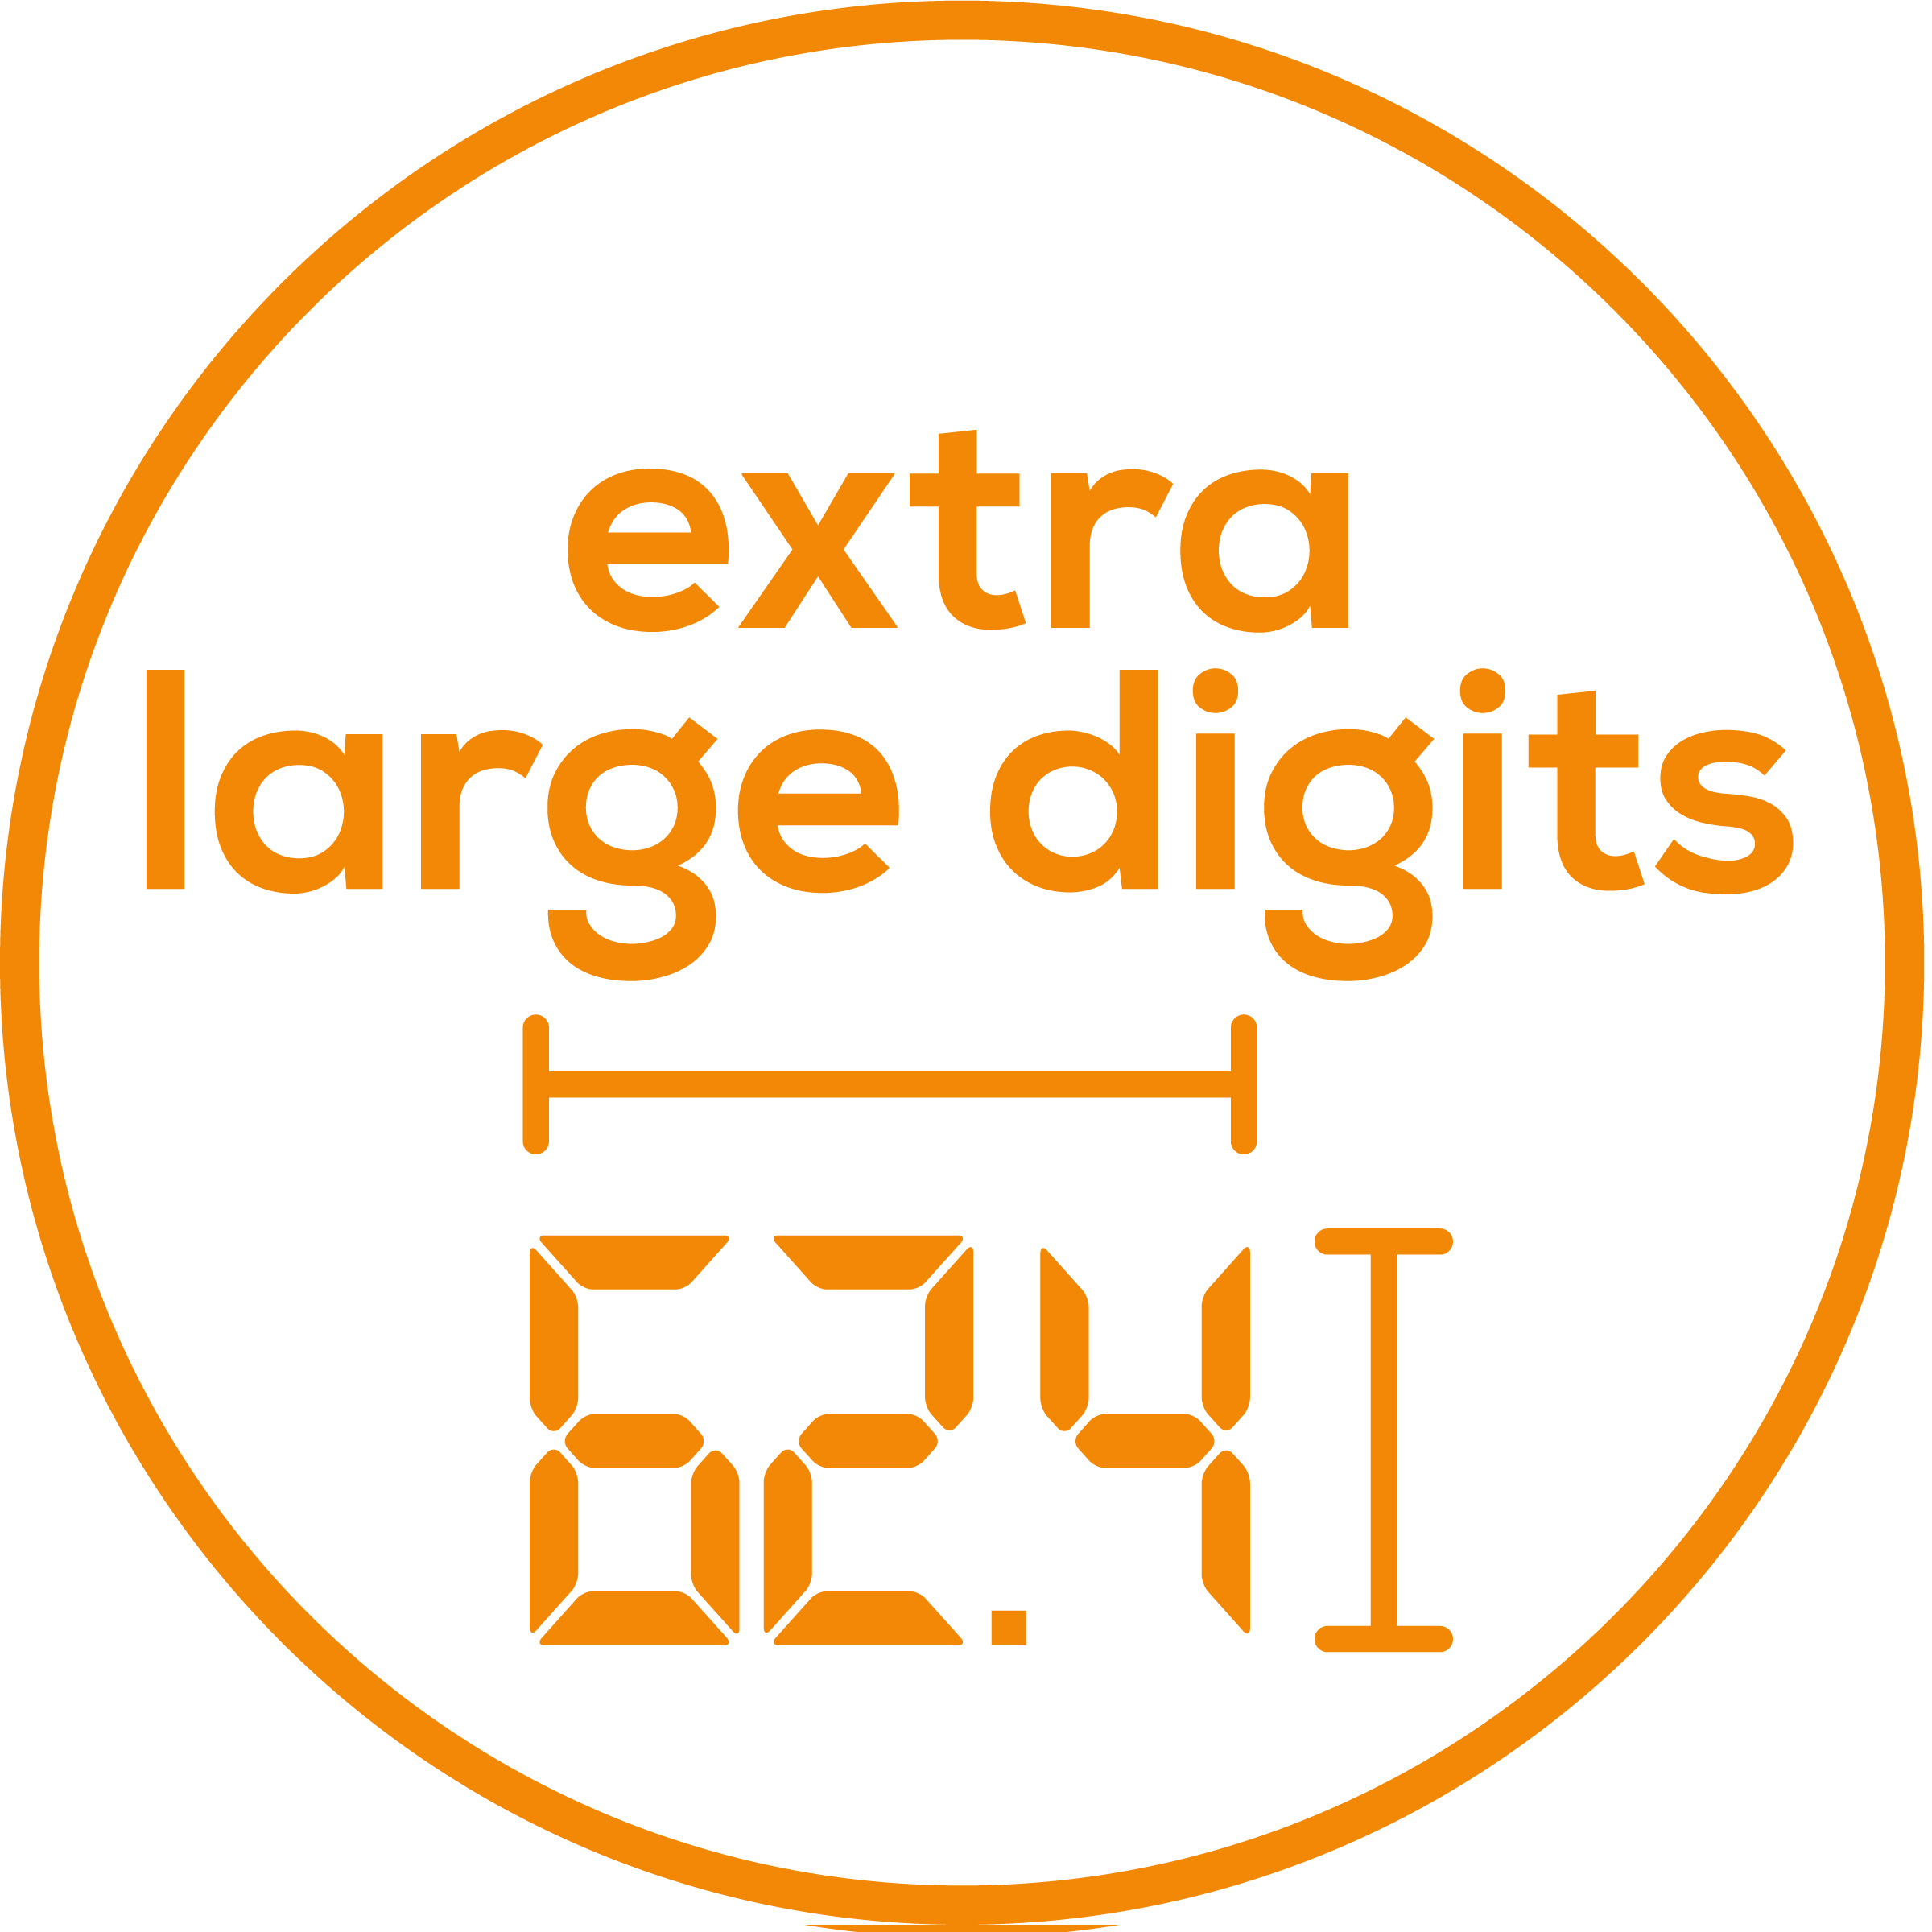 Extra-large digits The personal scale has extra-large digits